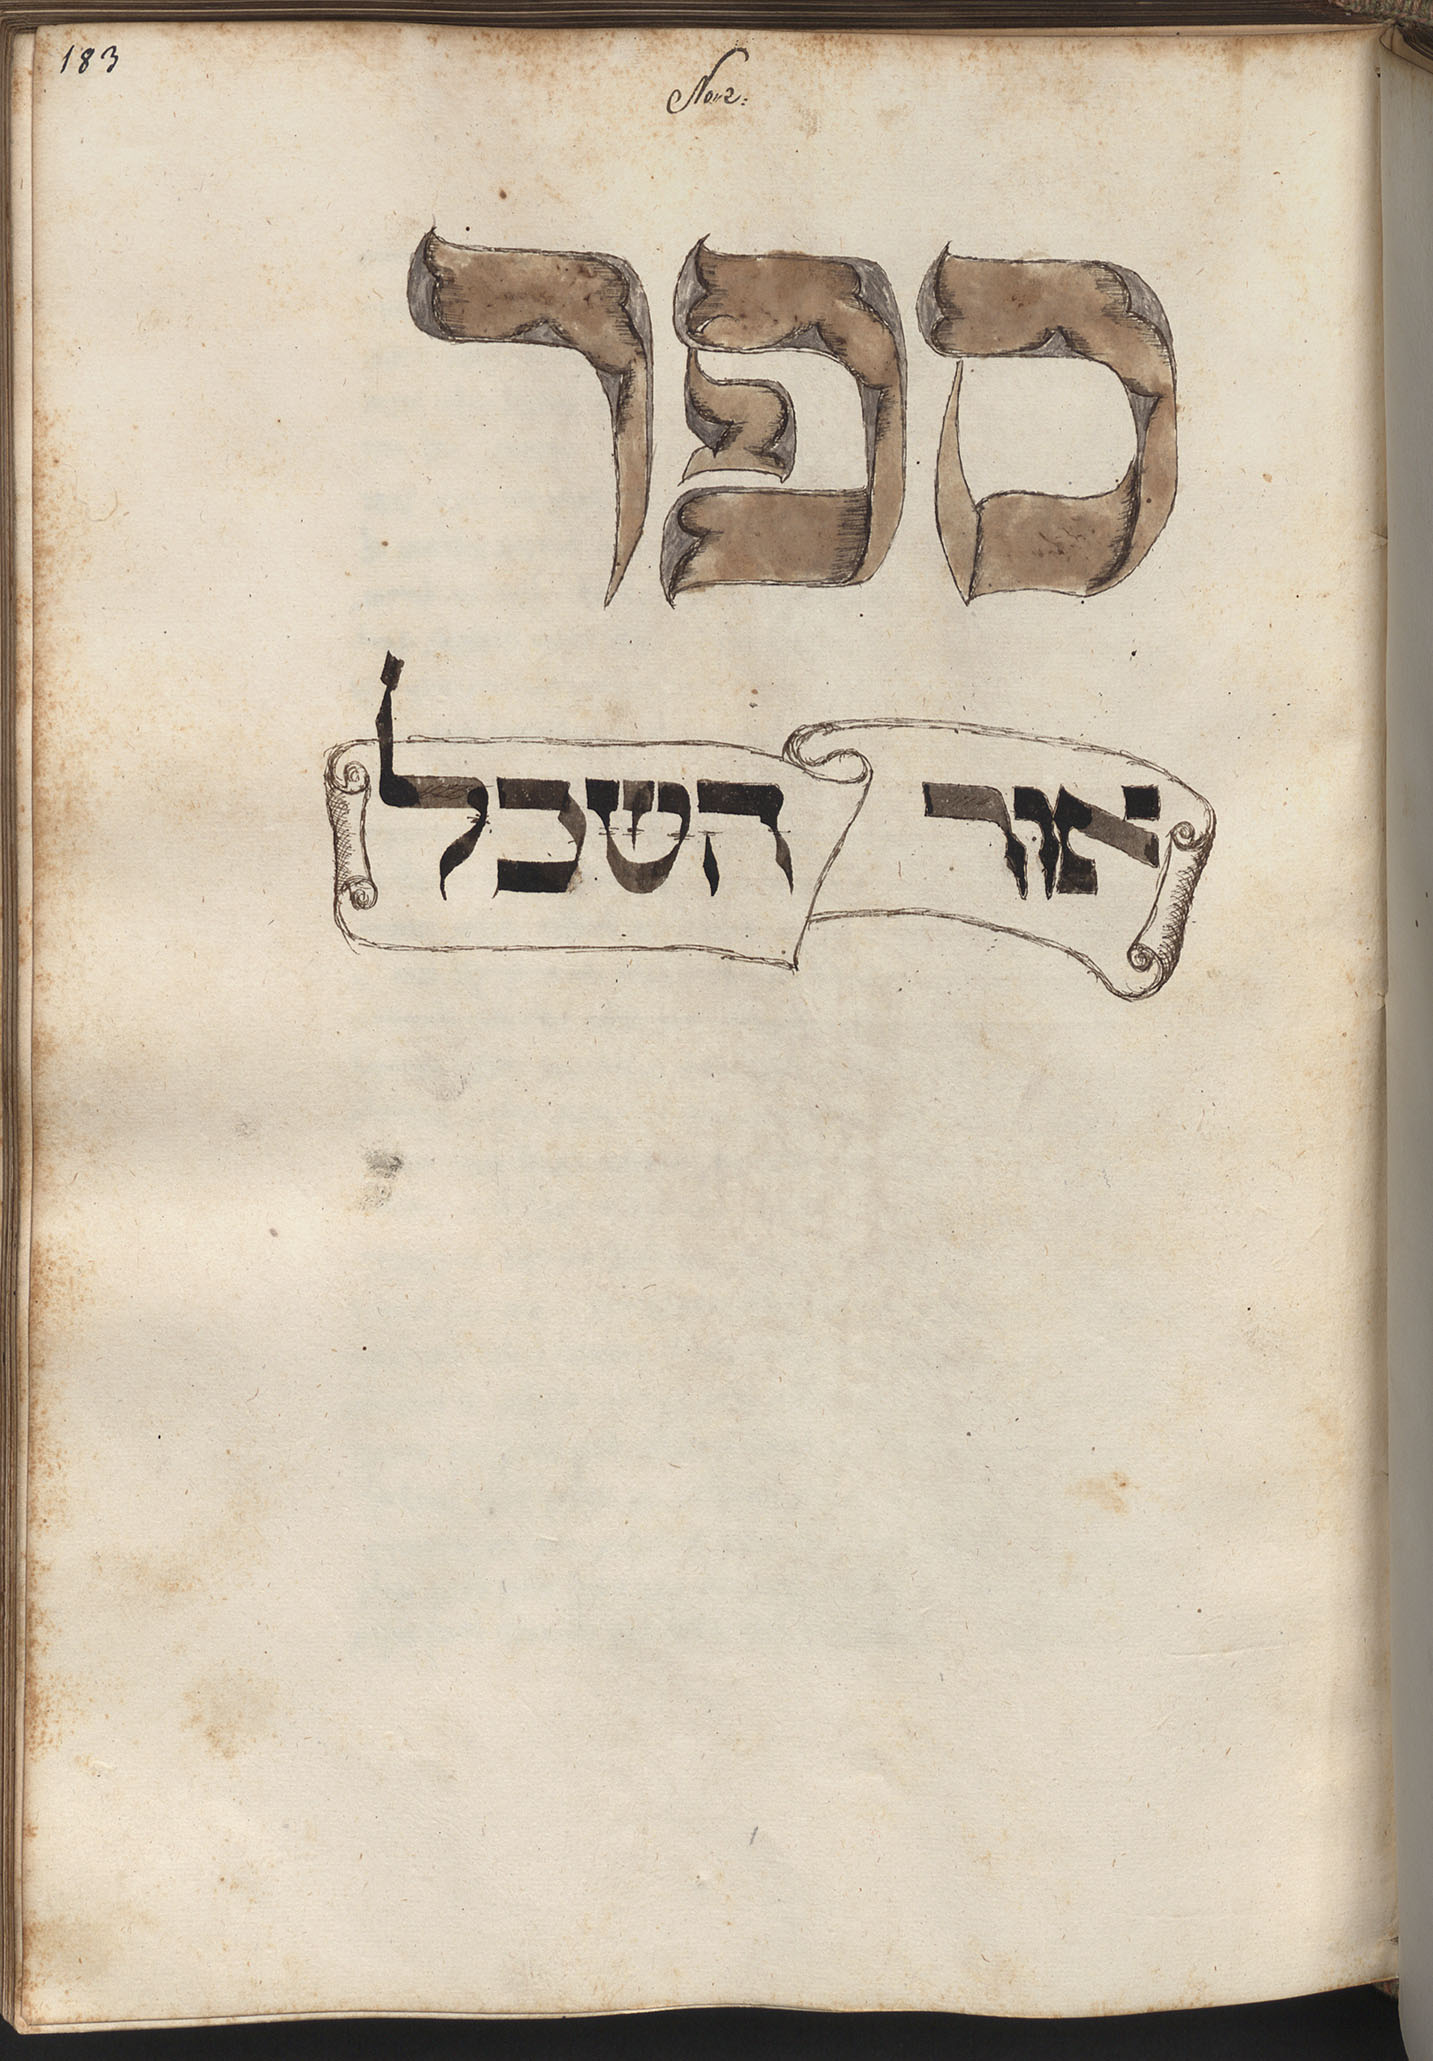 One of the manuscripts Scholem found in Munich was a 1552 copy of Or Hasekhel